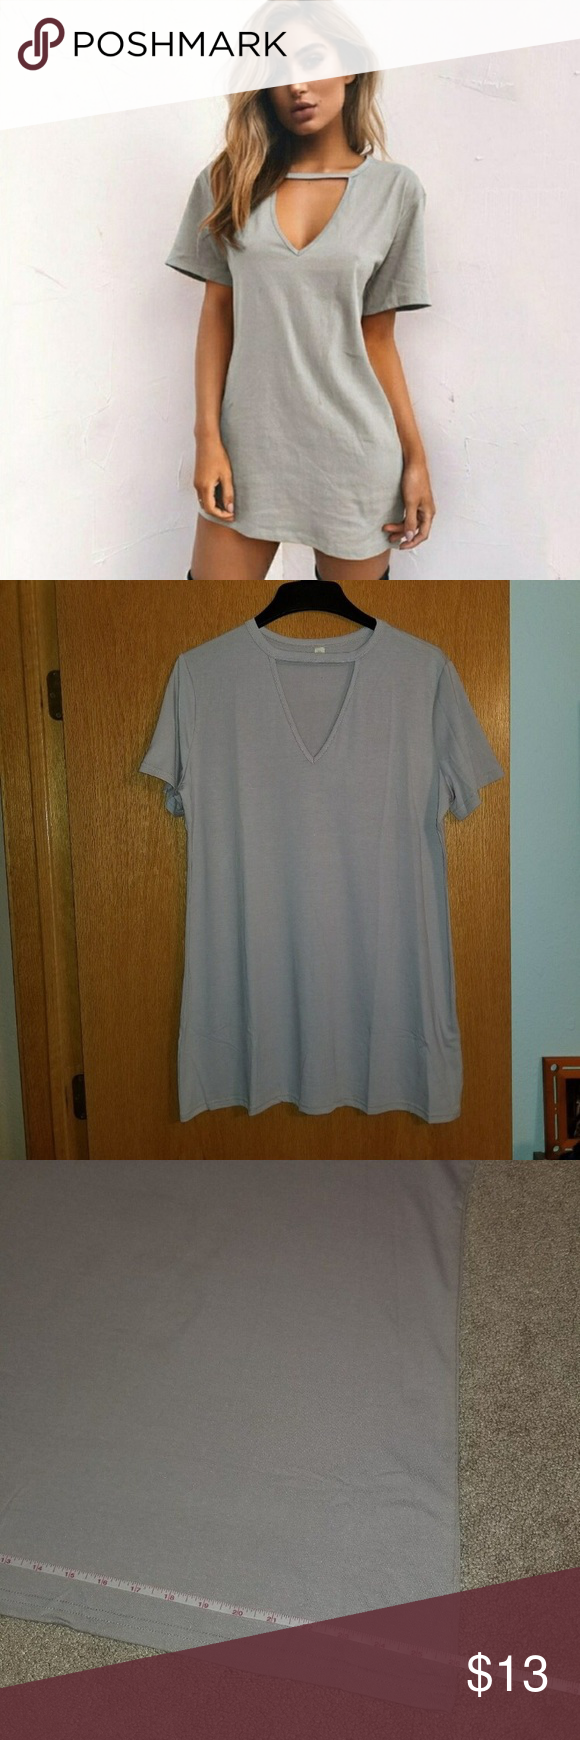 Oversized t shirt dress customer support and delivery